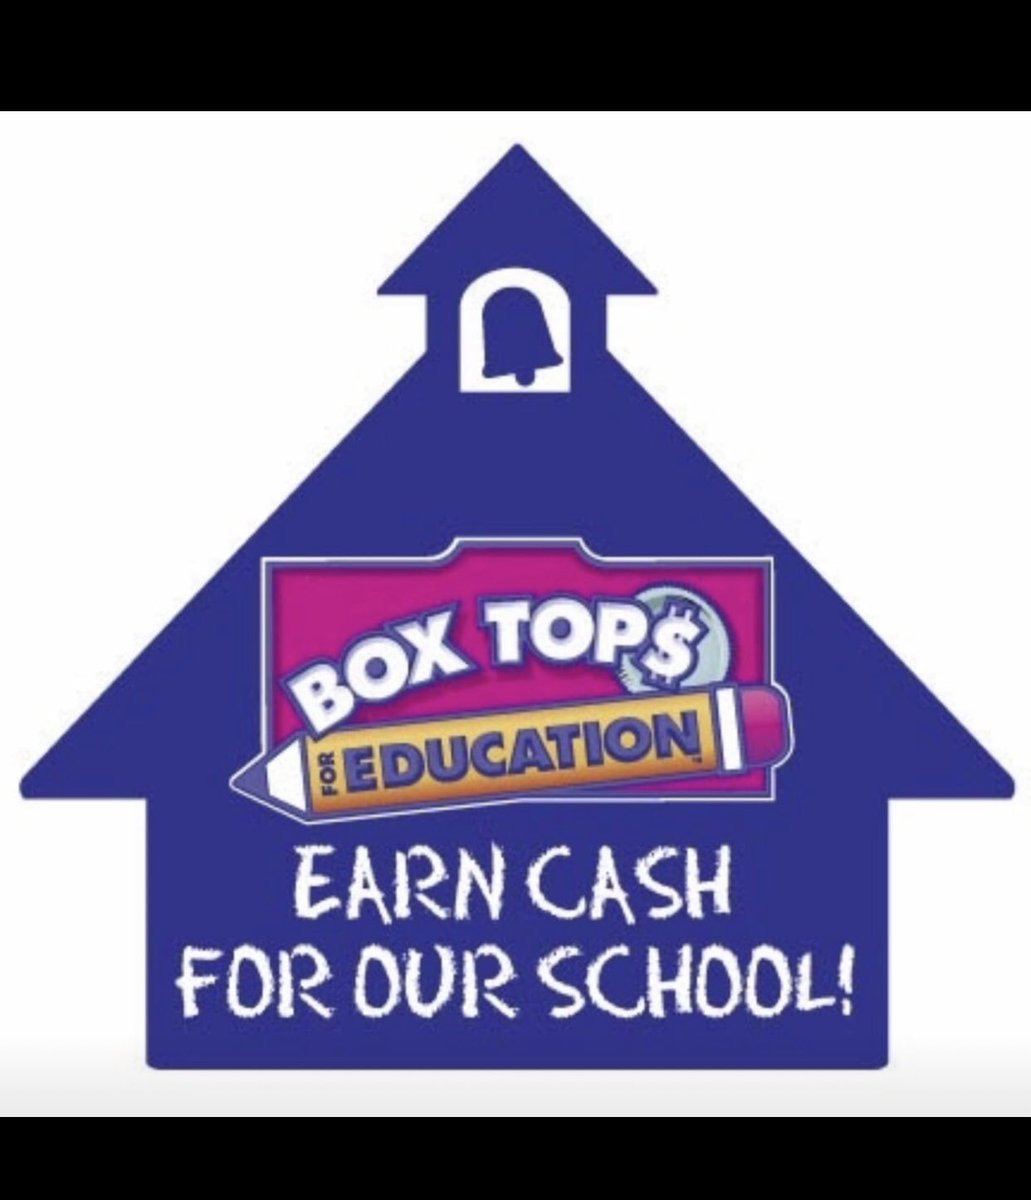 Rose Garden Elementary On Twitter We Are Collecting Box Tops And